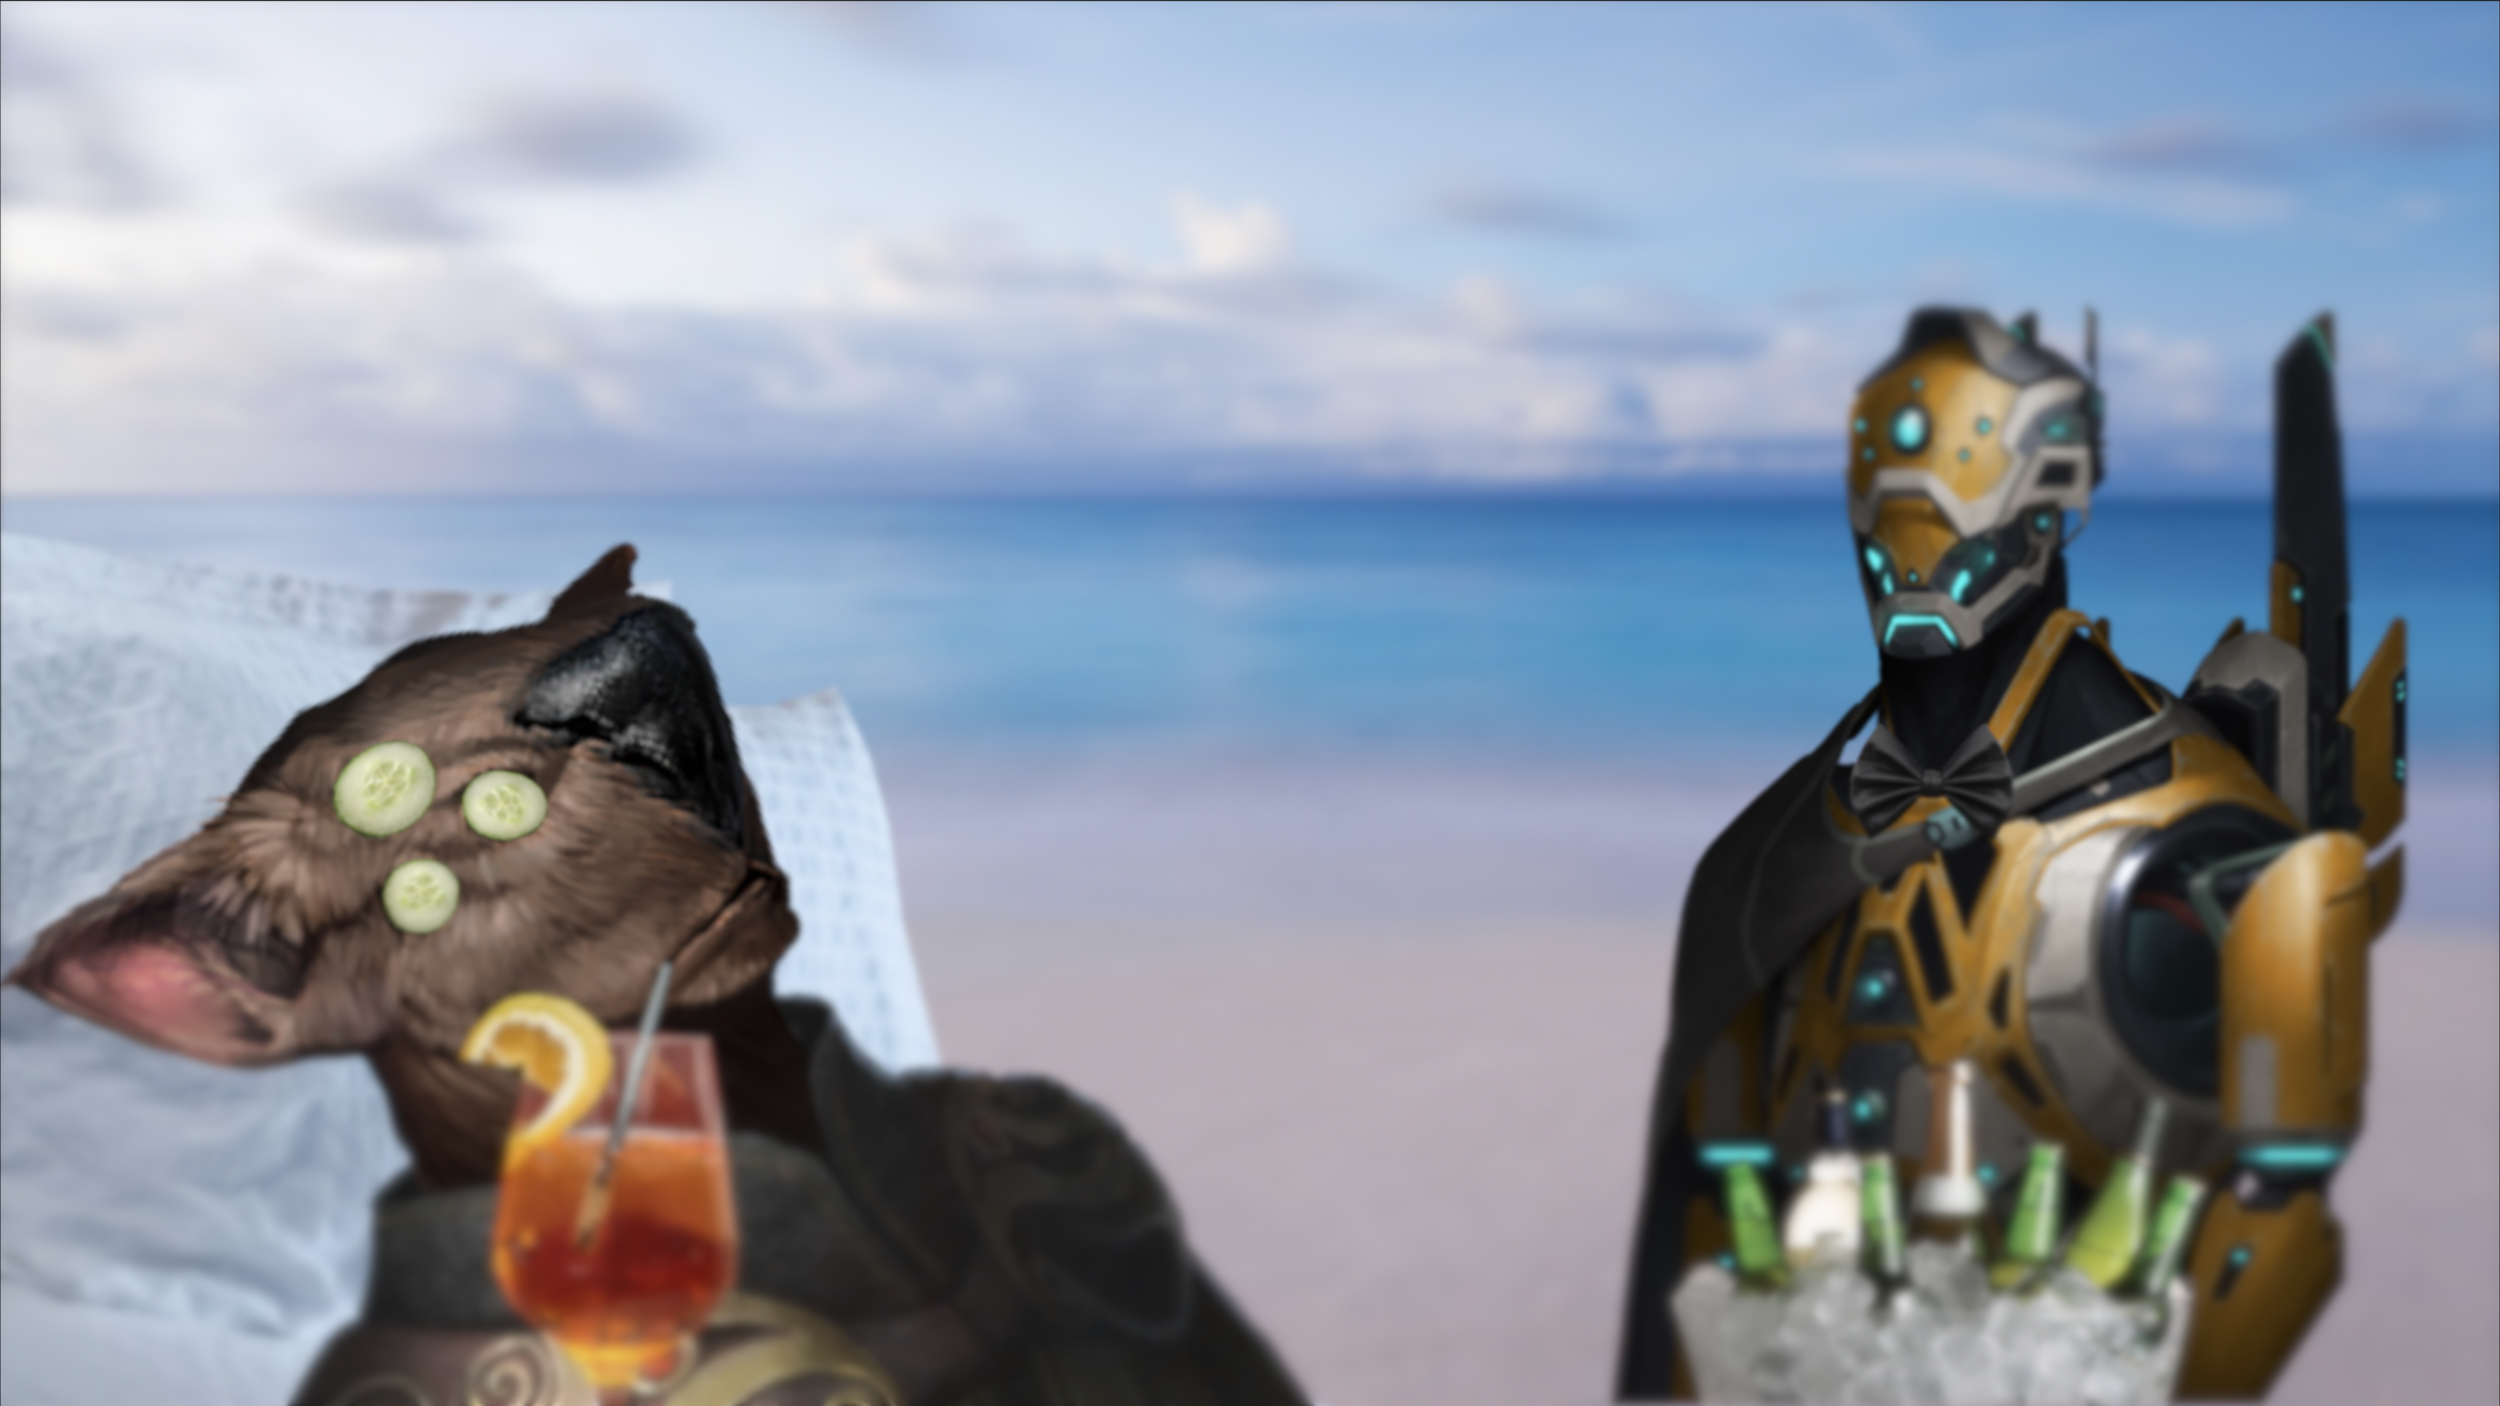 Image: A Sinrath bio-trophy enjoys mandatory relaxation in one of thousands of Paradise Domes on Dekronia, as requested by its ever watchful robotic Custodian.